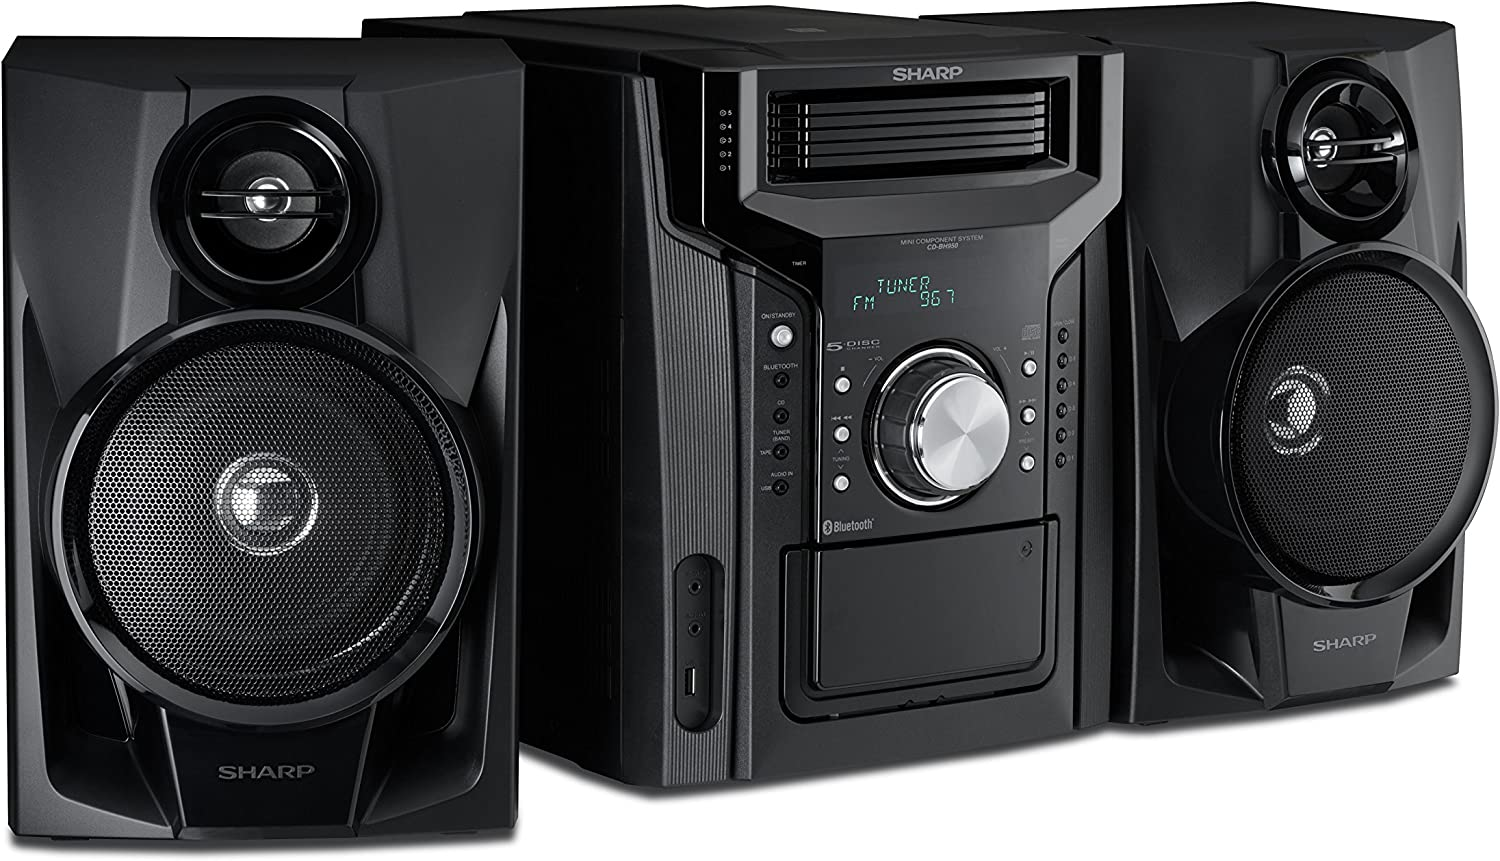 Sharp CD-DH950P Home Theater System AS-IS Read